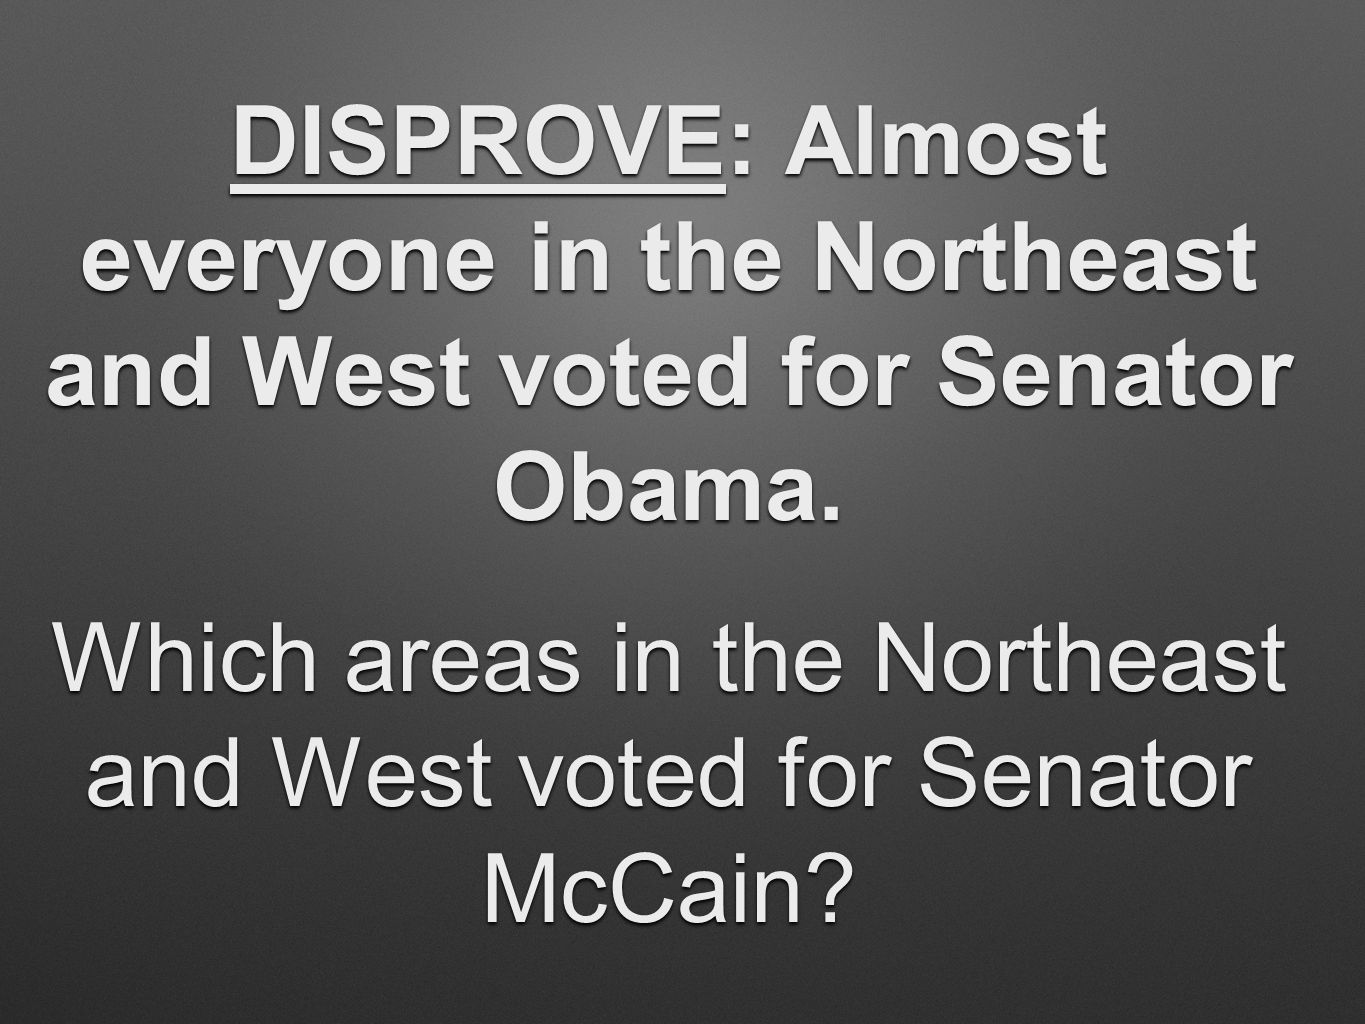 DISPROVE: Almost everyone in the Northeast and West voted for Senator Obama.